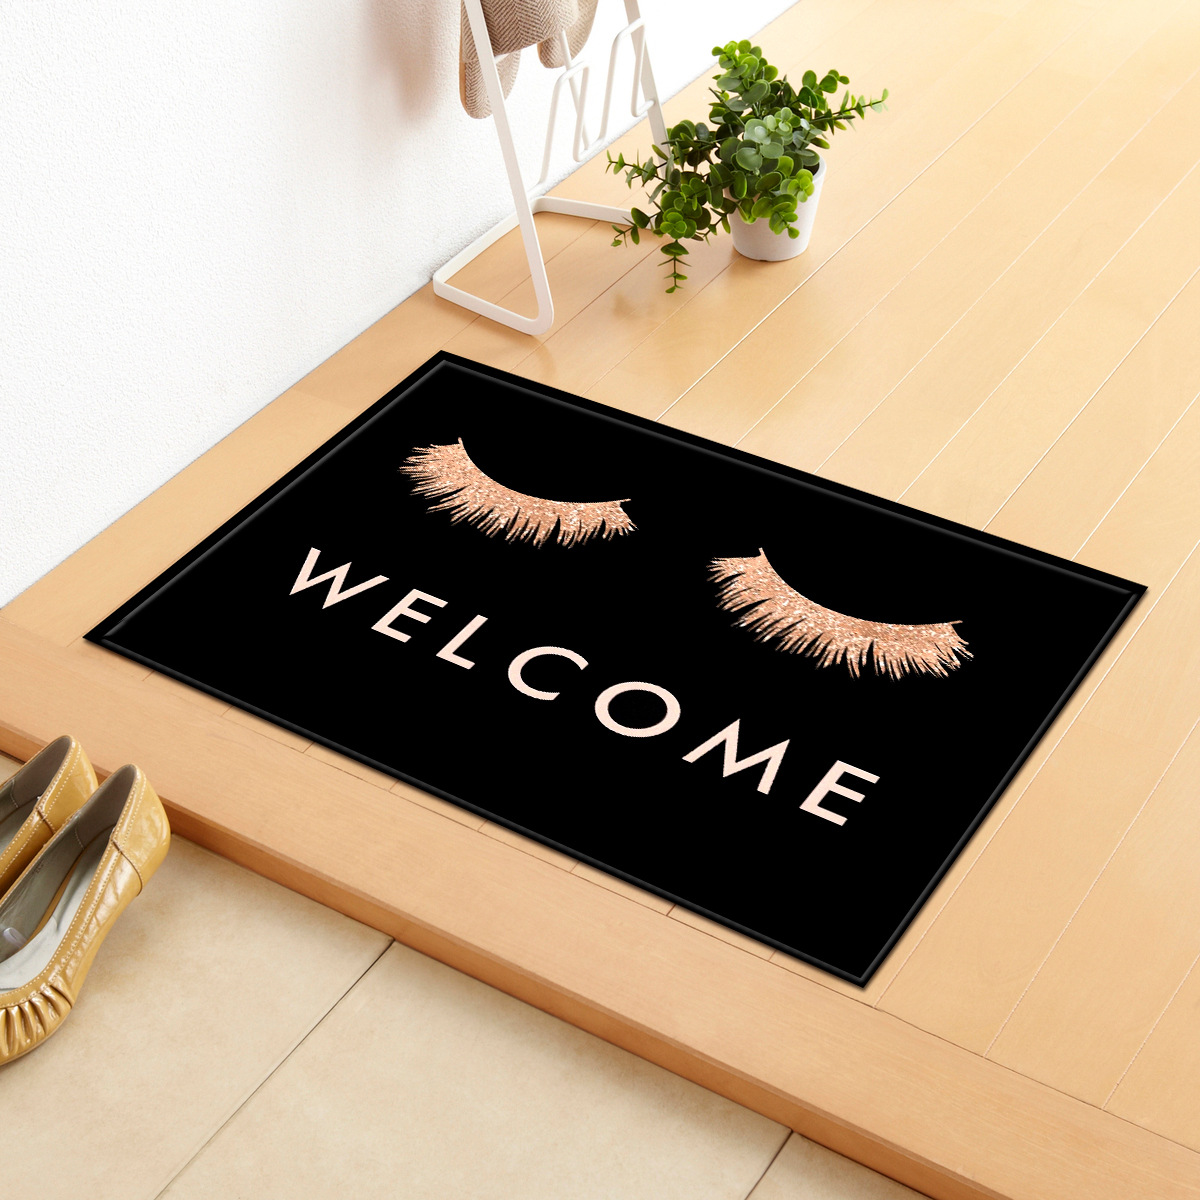 Welcome Black Bath Mat Bathroom Carpet Water Absorption Rug Shaggy Memory Foam 40*60cm India Kitchen Doormat Floor Blanket